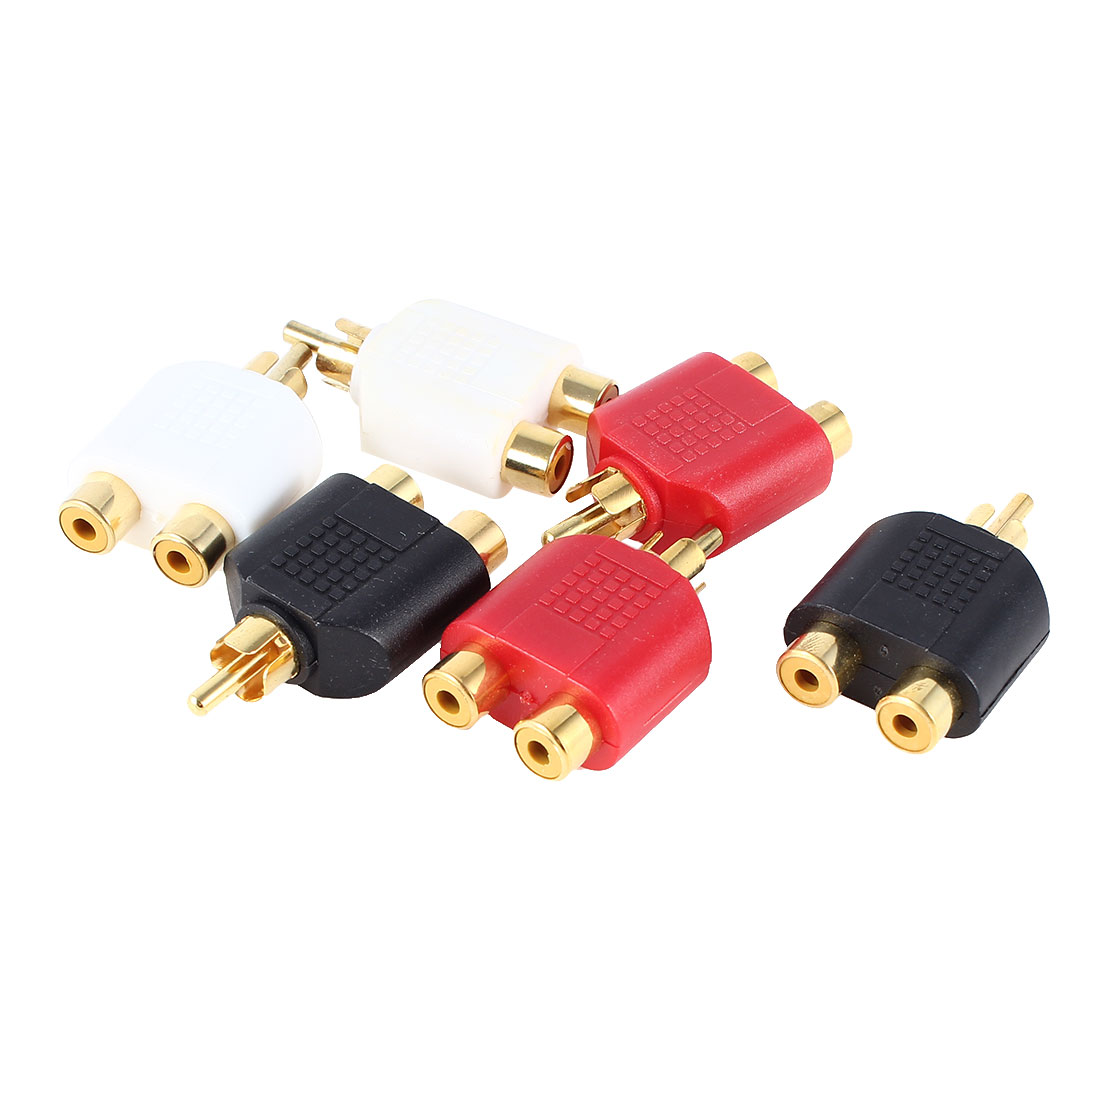 6 Pcs RCA Male to Double RCA Female Stereo Audio Convertor Connector